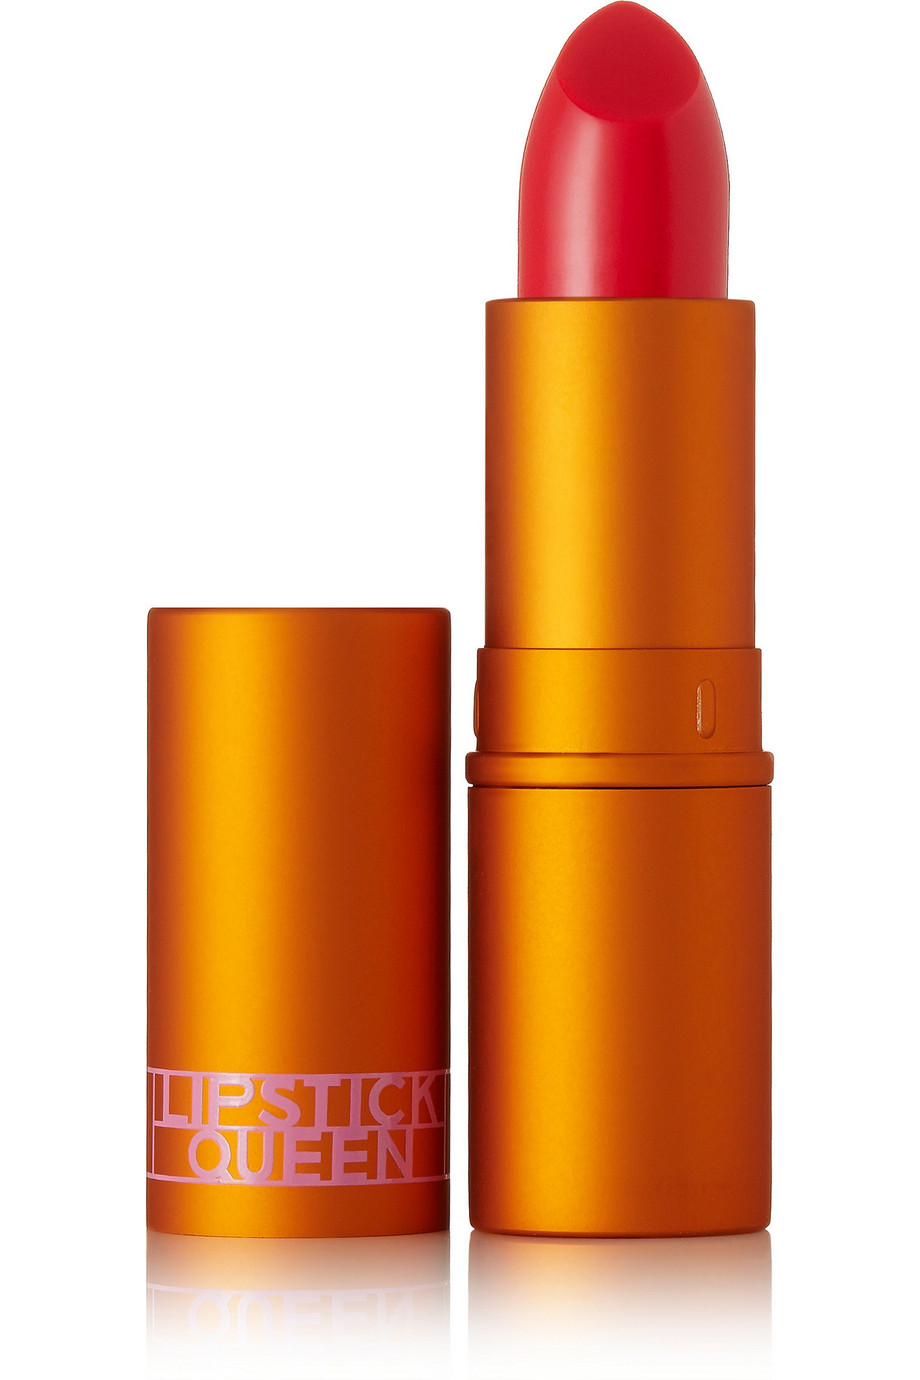 Endless Summer Lipstick - Aloha, by Lipstick Queen